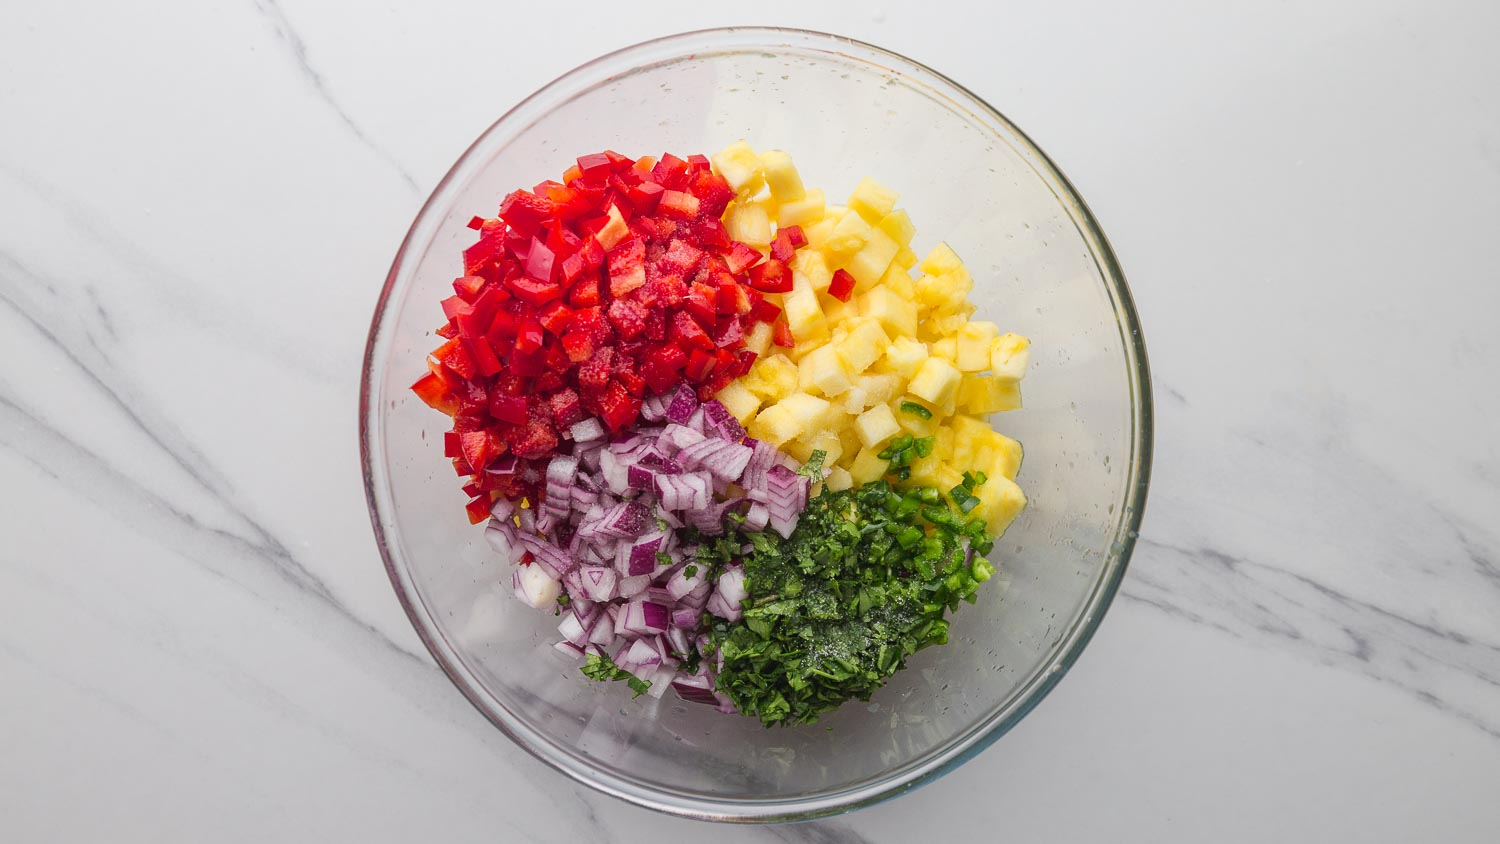 Chopped ingredients for pineapple salsa in a glass bowl